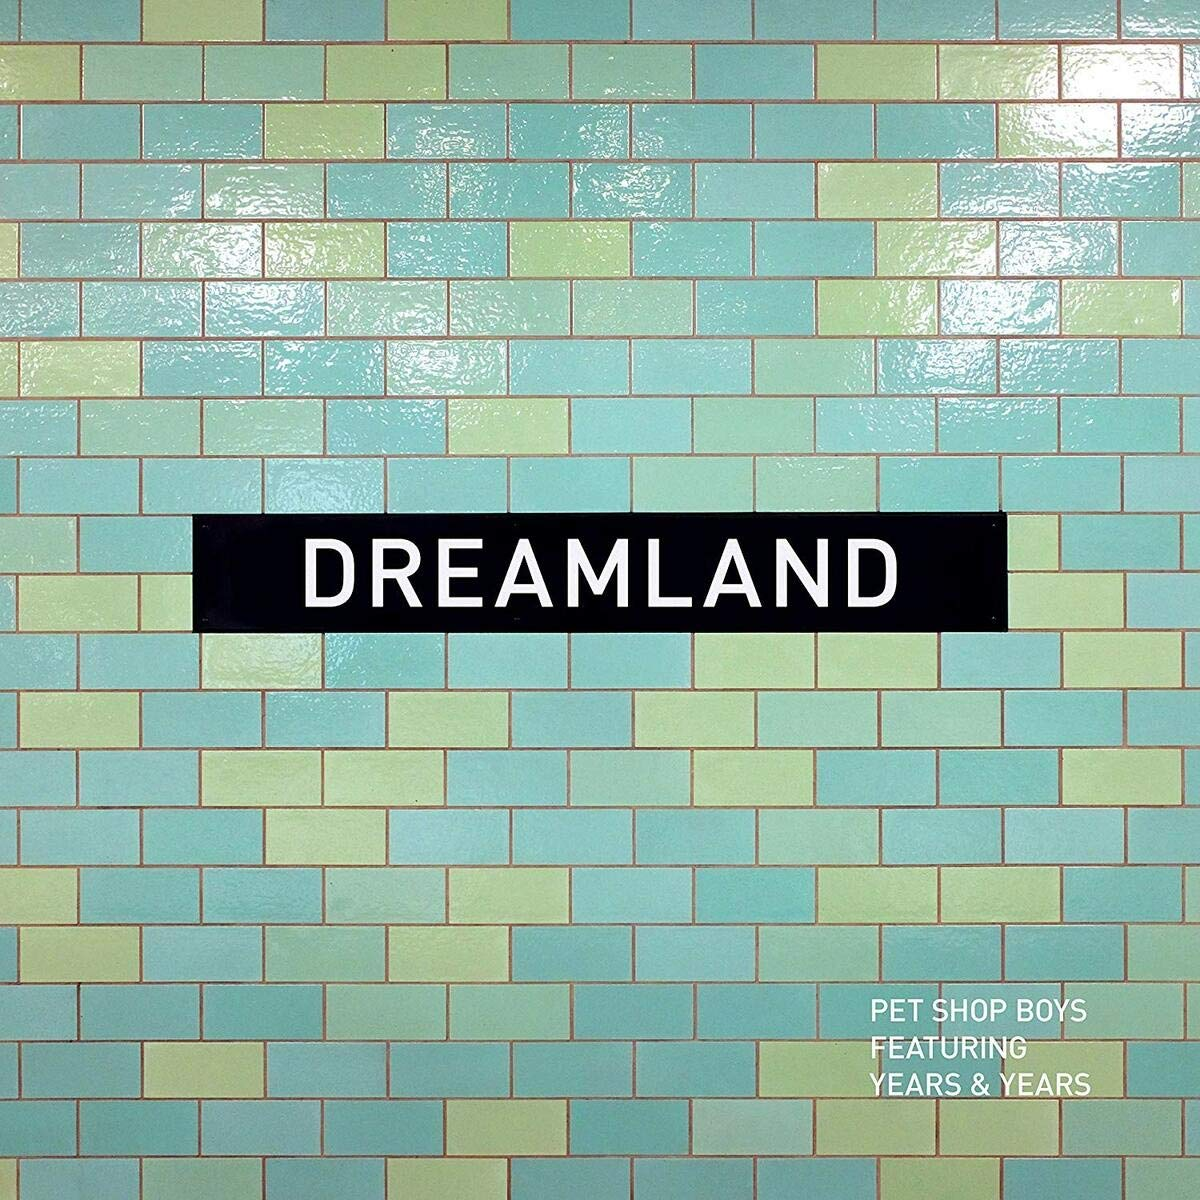 Pet Shop Boys - Dreamland